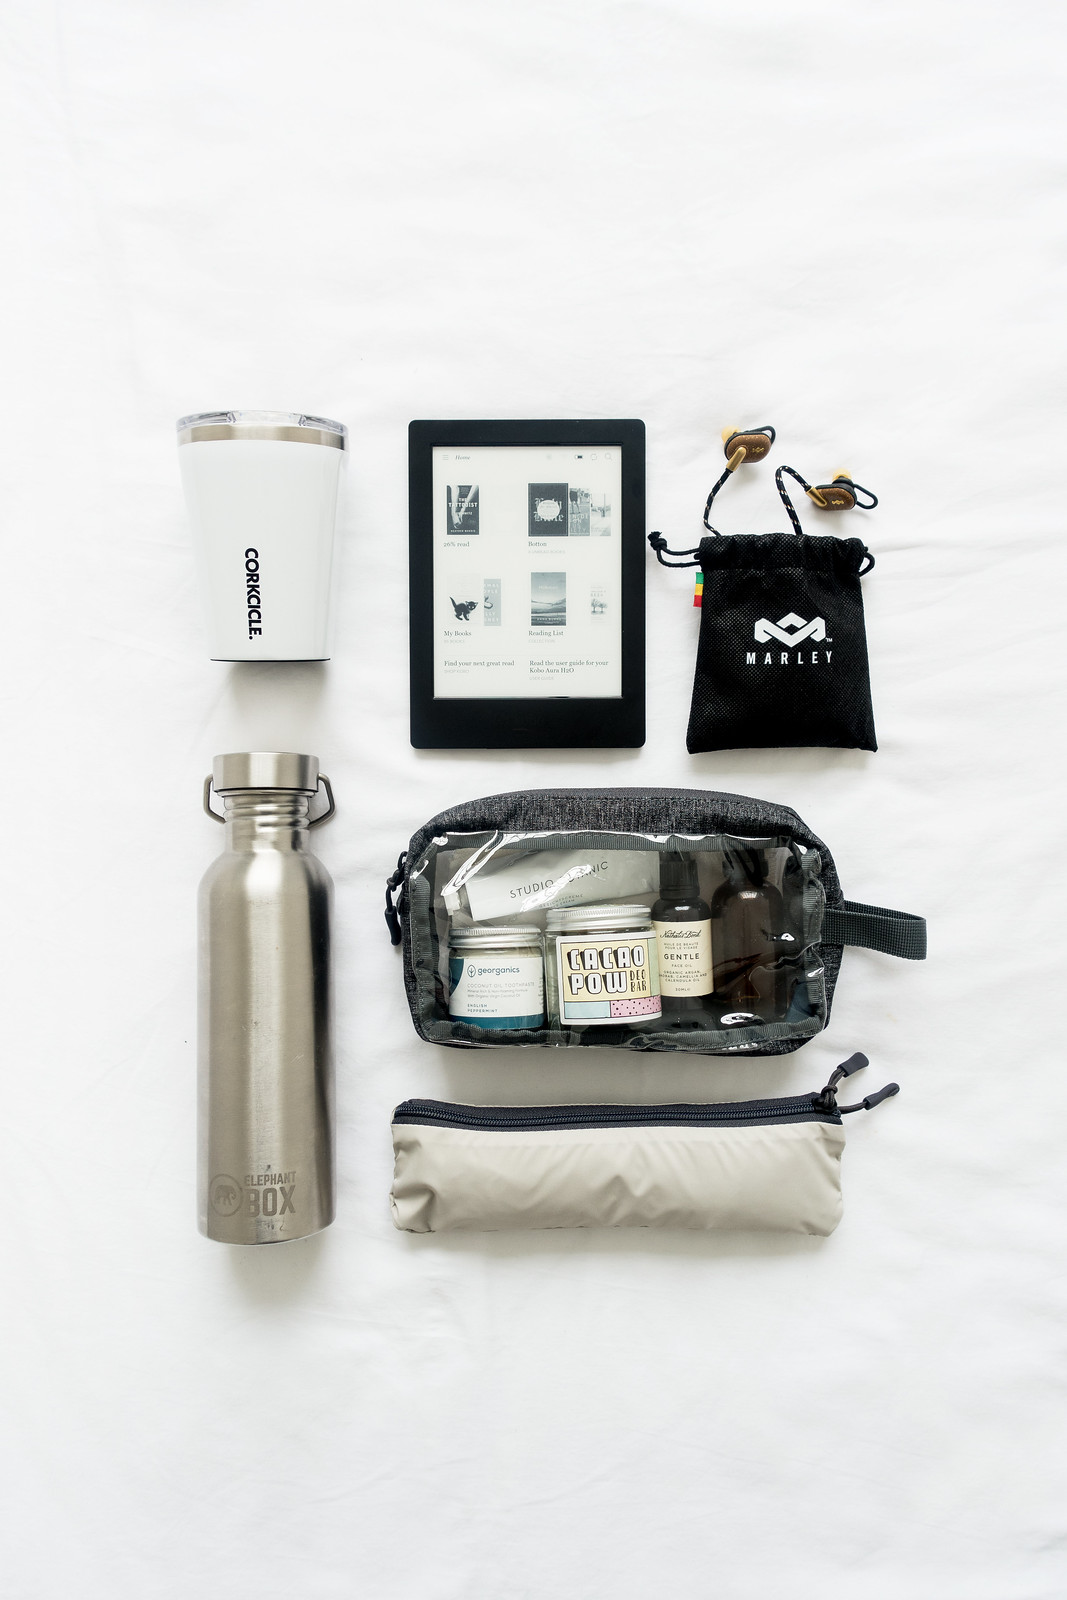 Travel Accessories To Help Pack Light and Avoid Waste